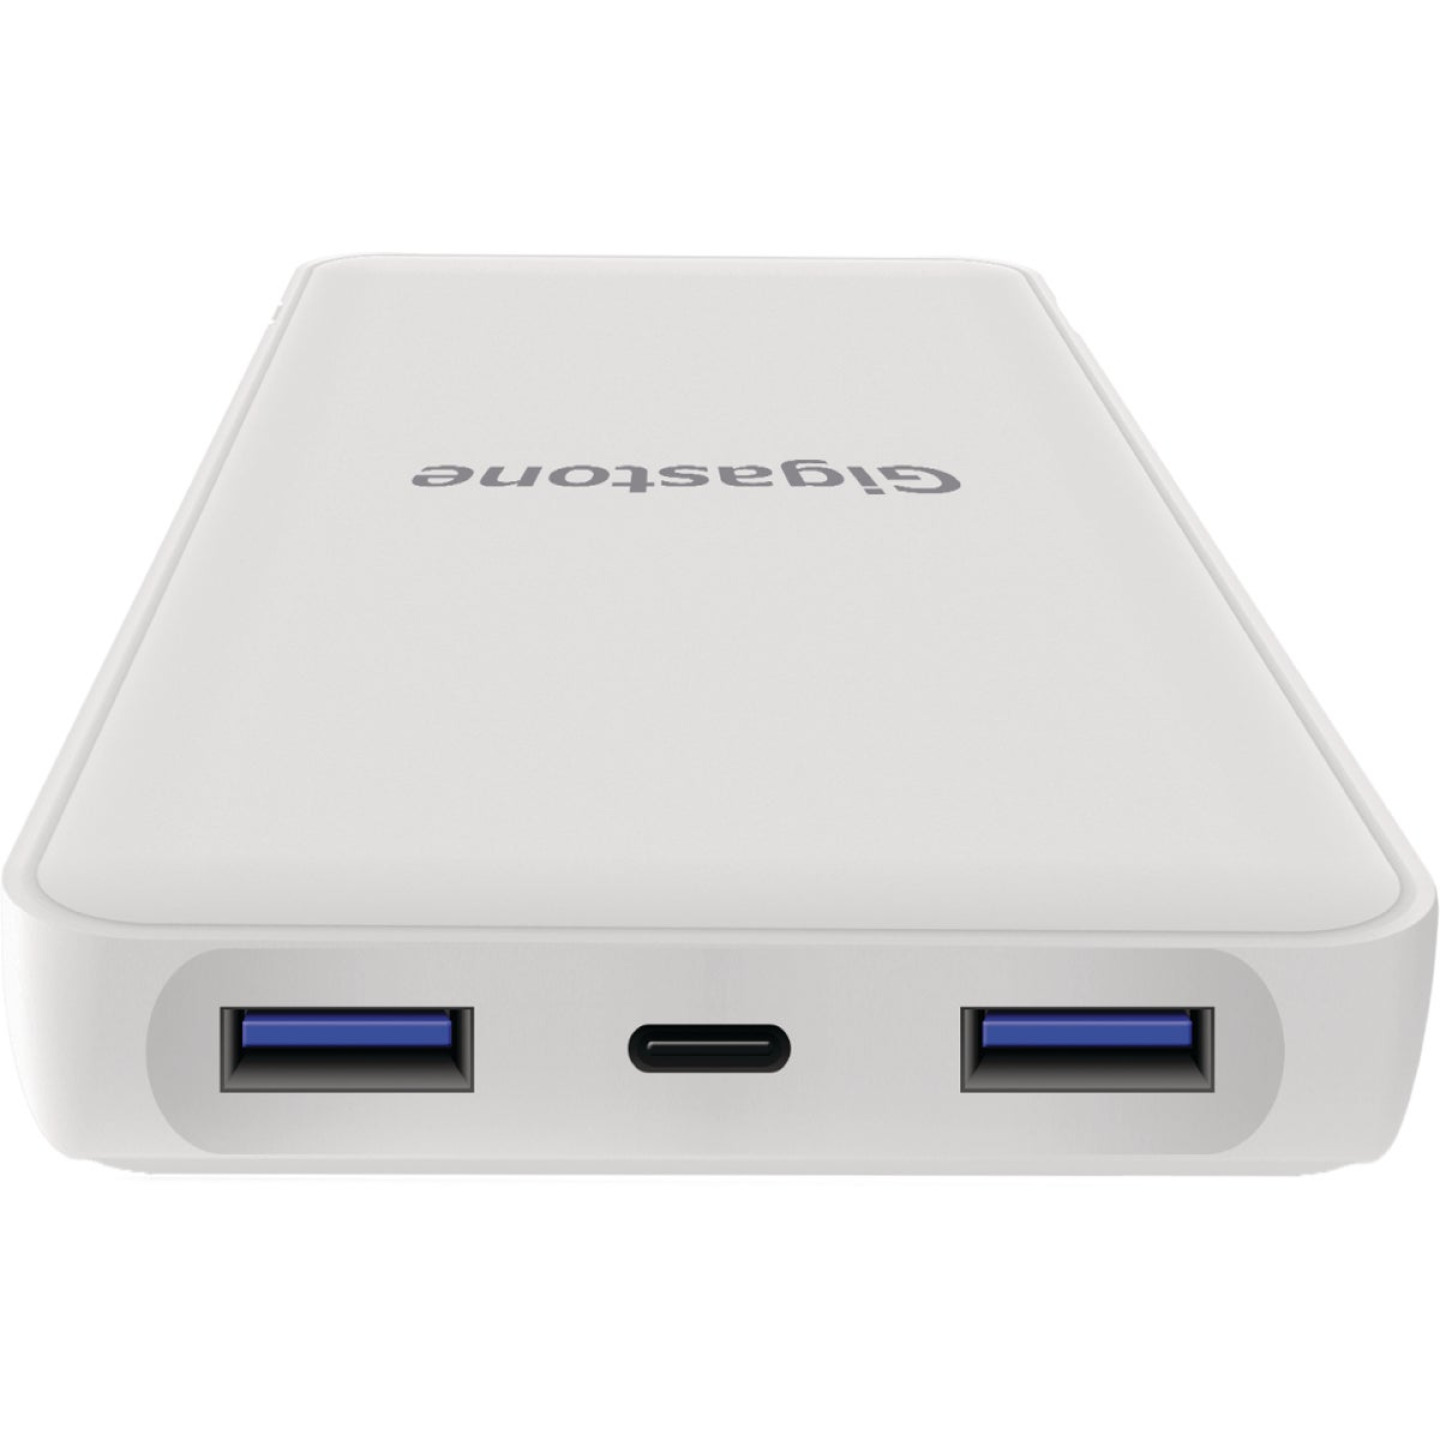 Gigastone 24,000 mAh Dual Port USB White Power Bank Image 5